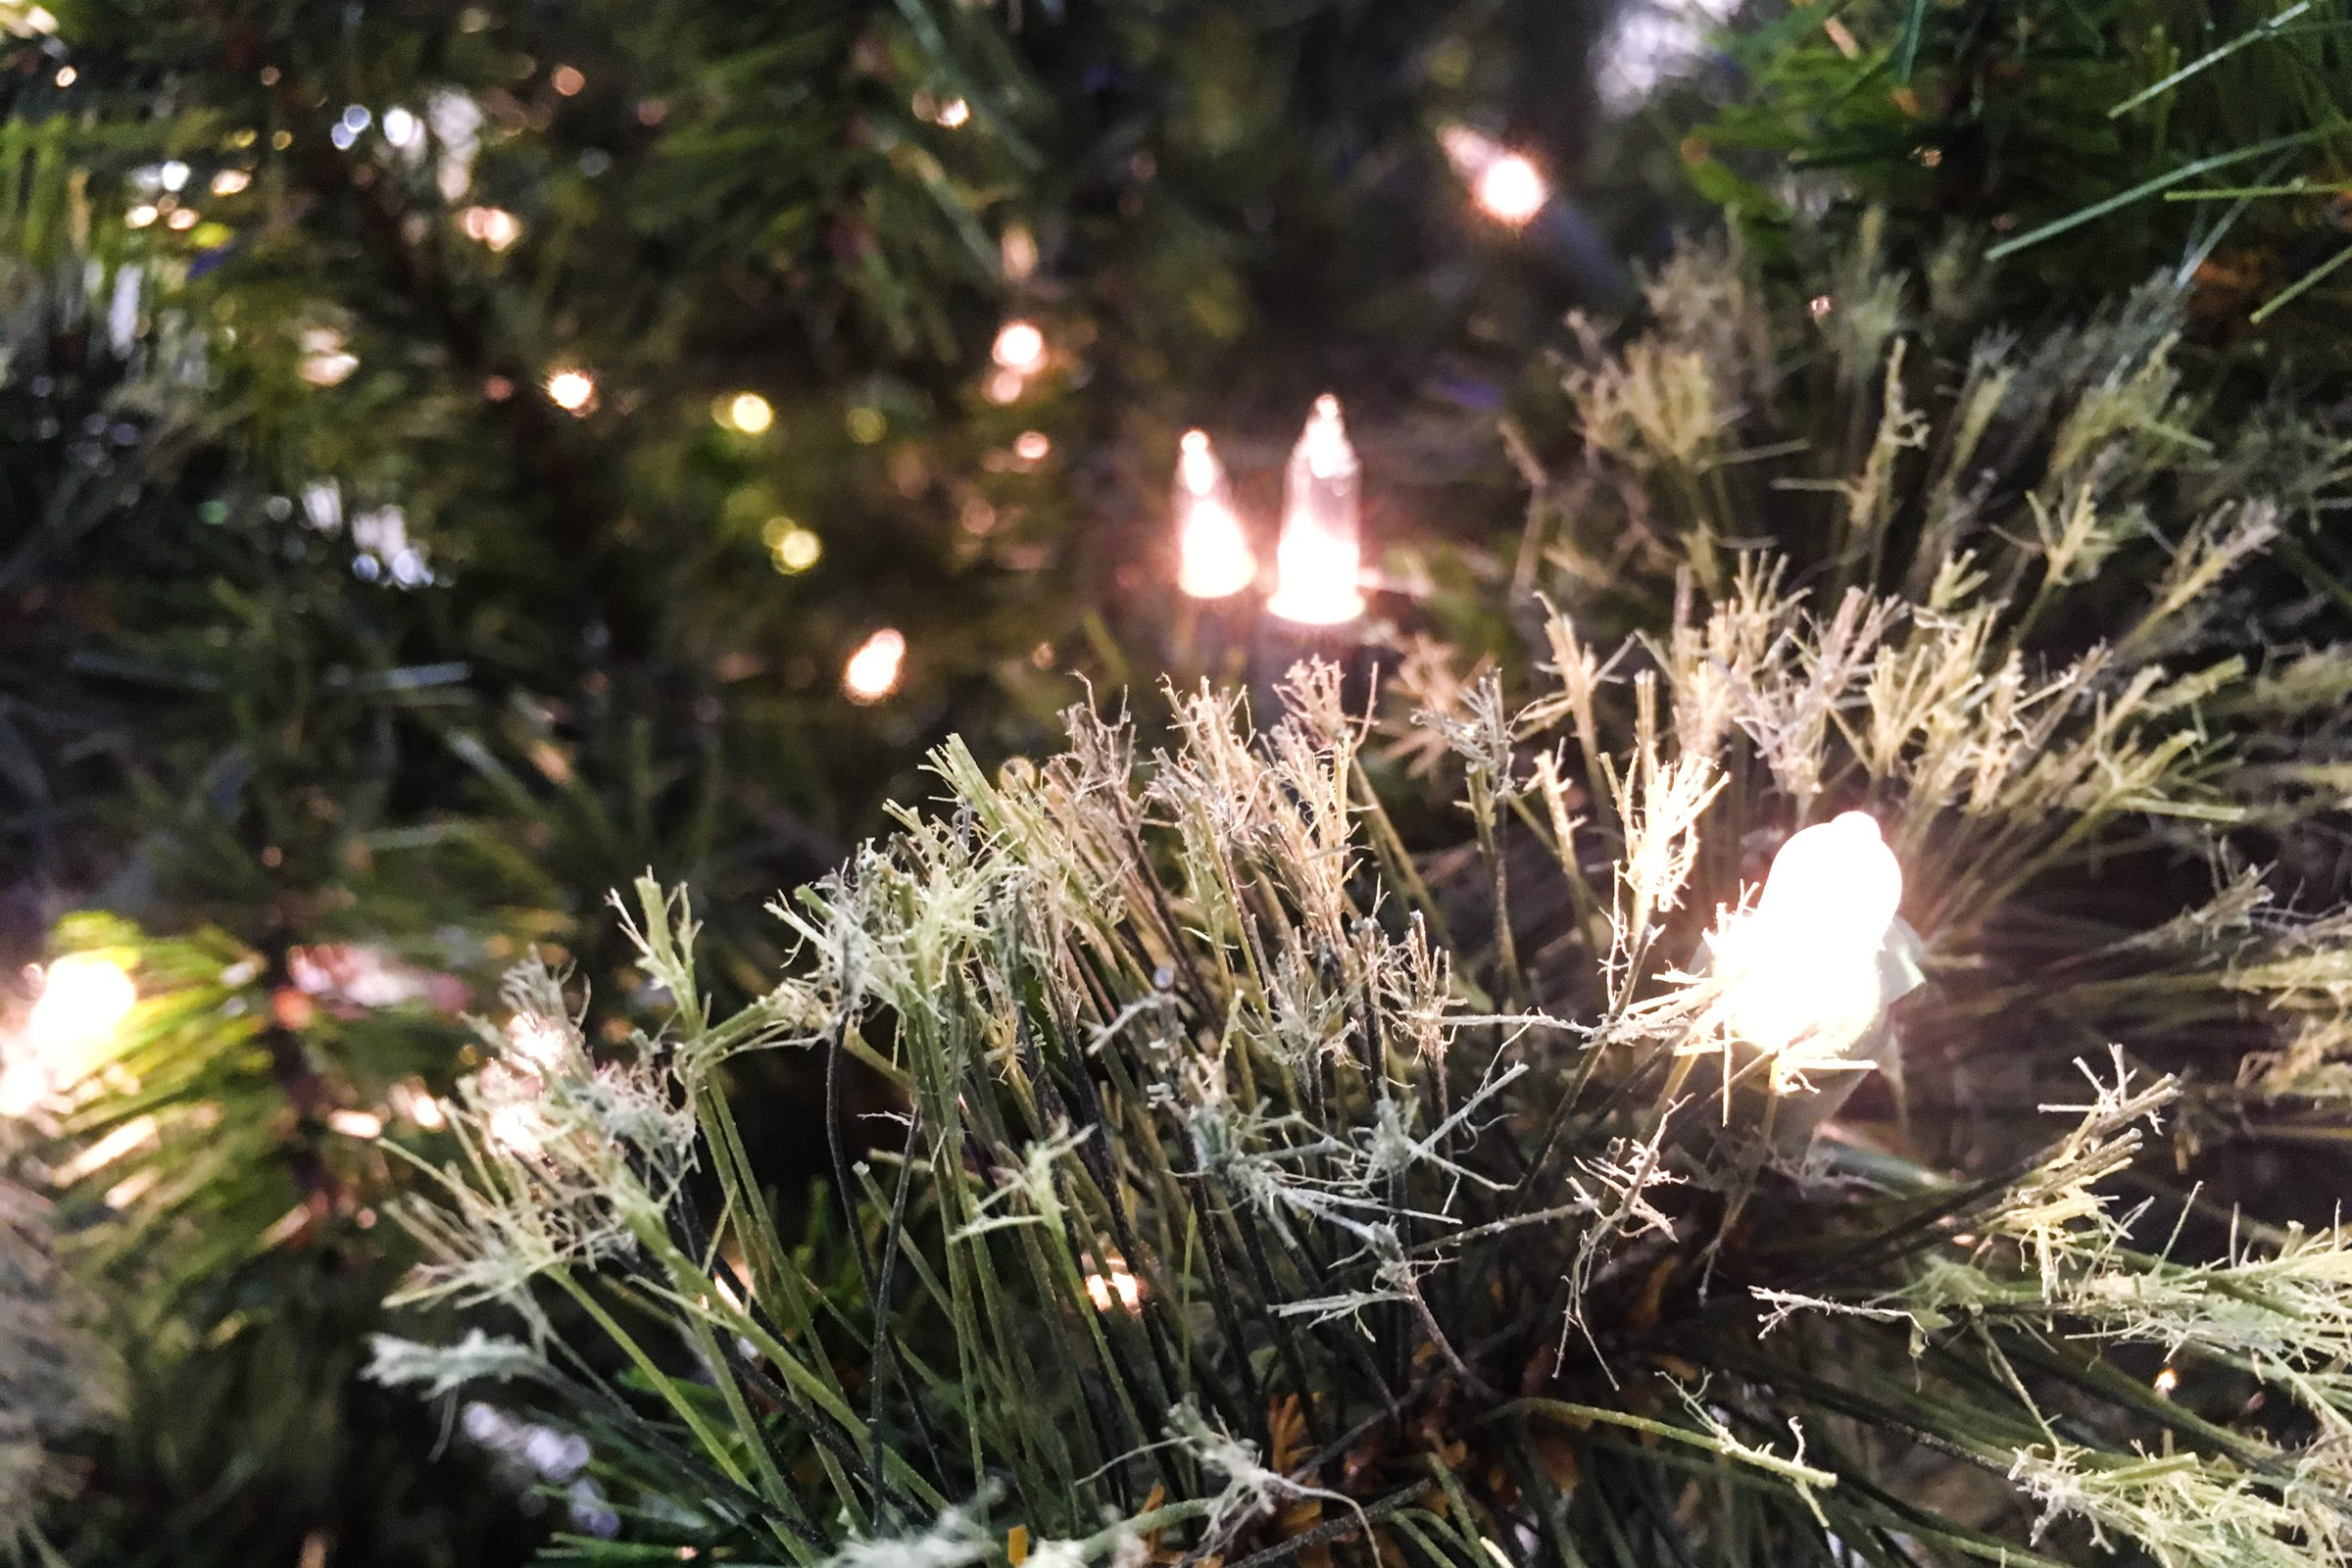 Close Up Of White Lights In Christmas Tree